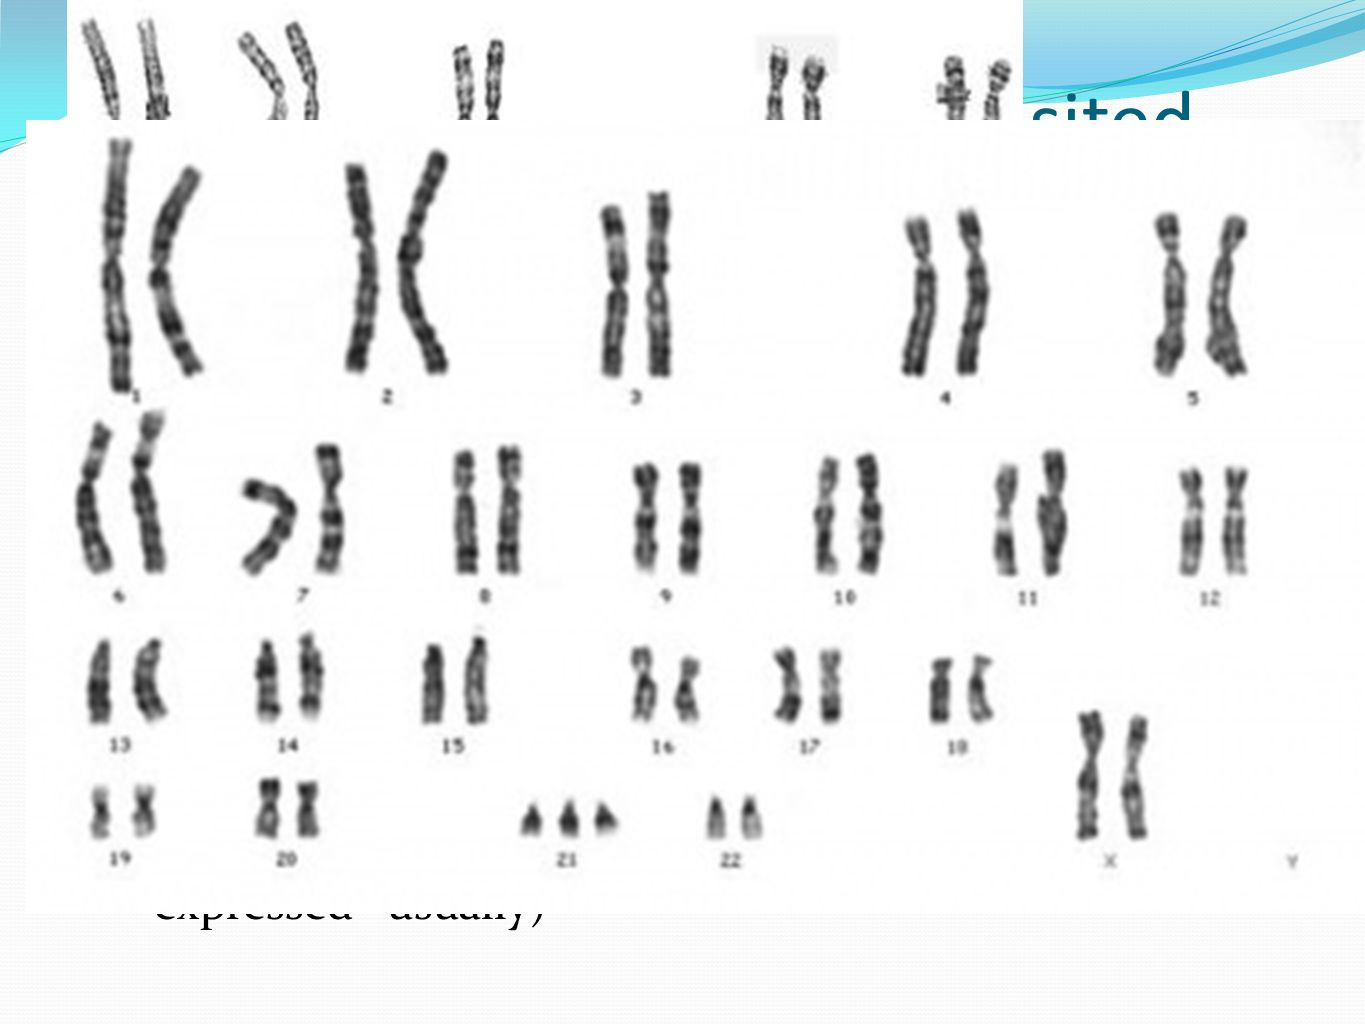 Chromosome Homologue Intro Genetics And Meiosis Ppt Video Online Download